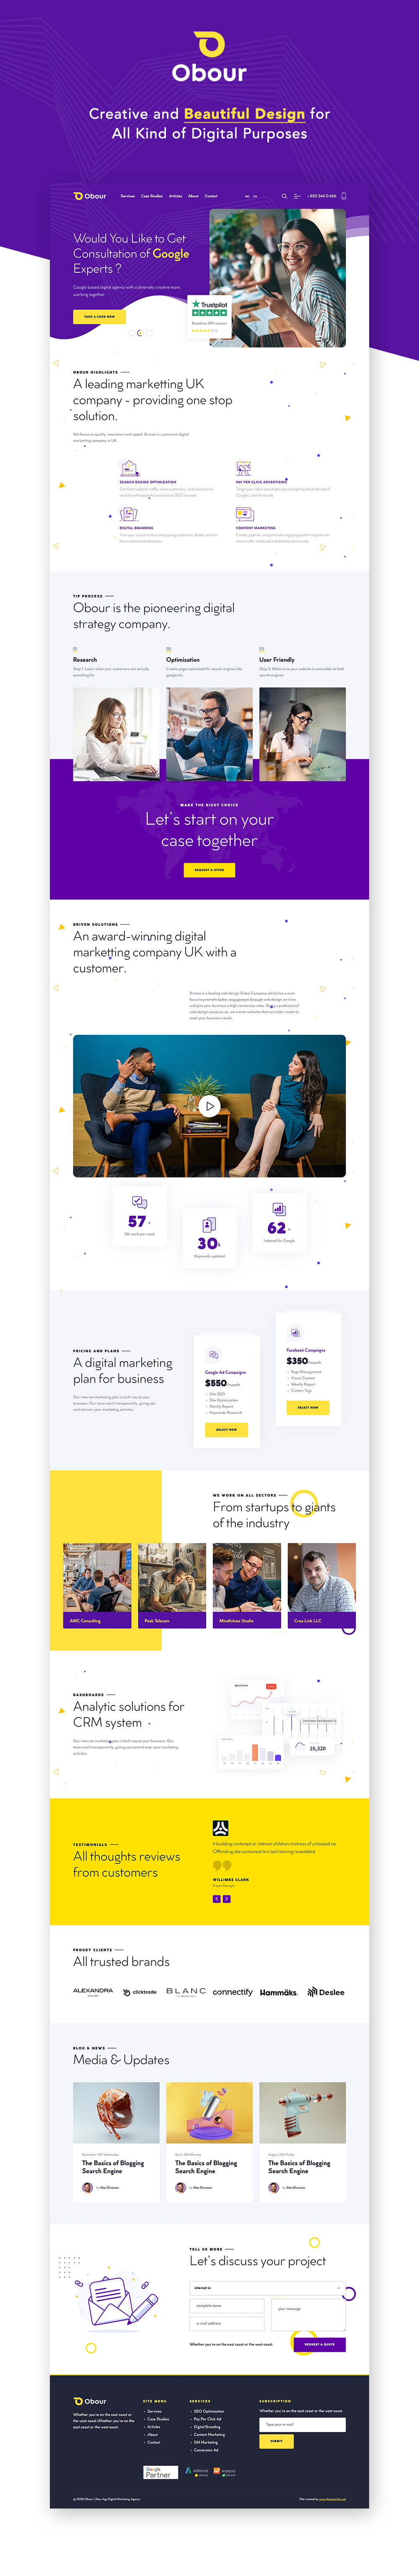 Obour | New Age Digital Marketing Agency WordPress Theme - 1